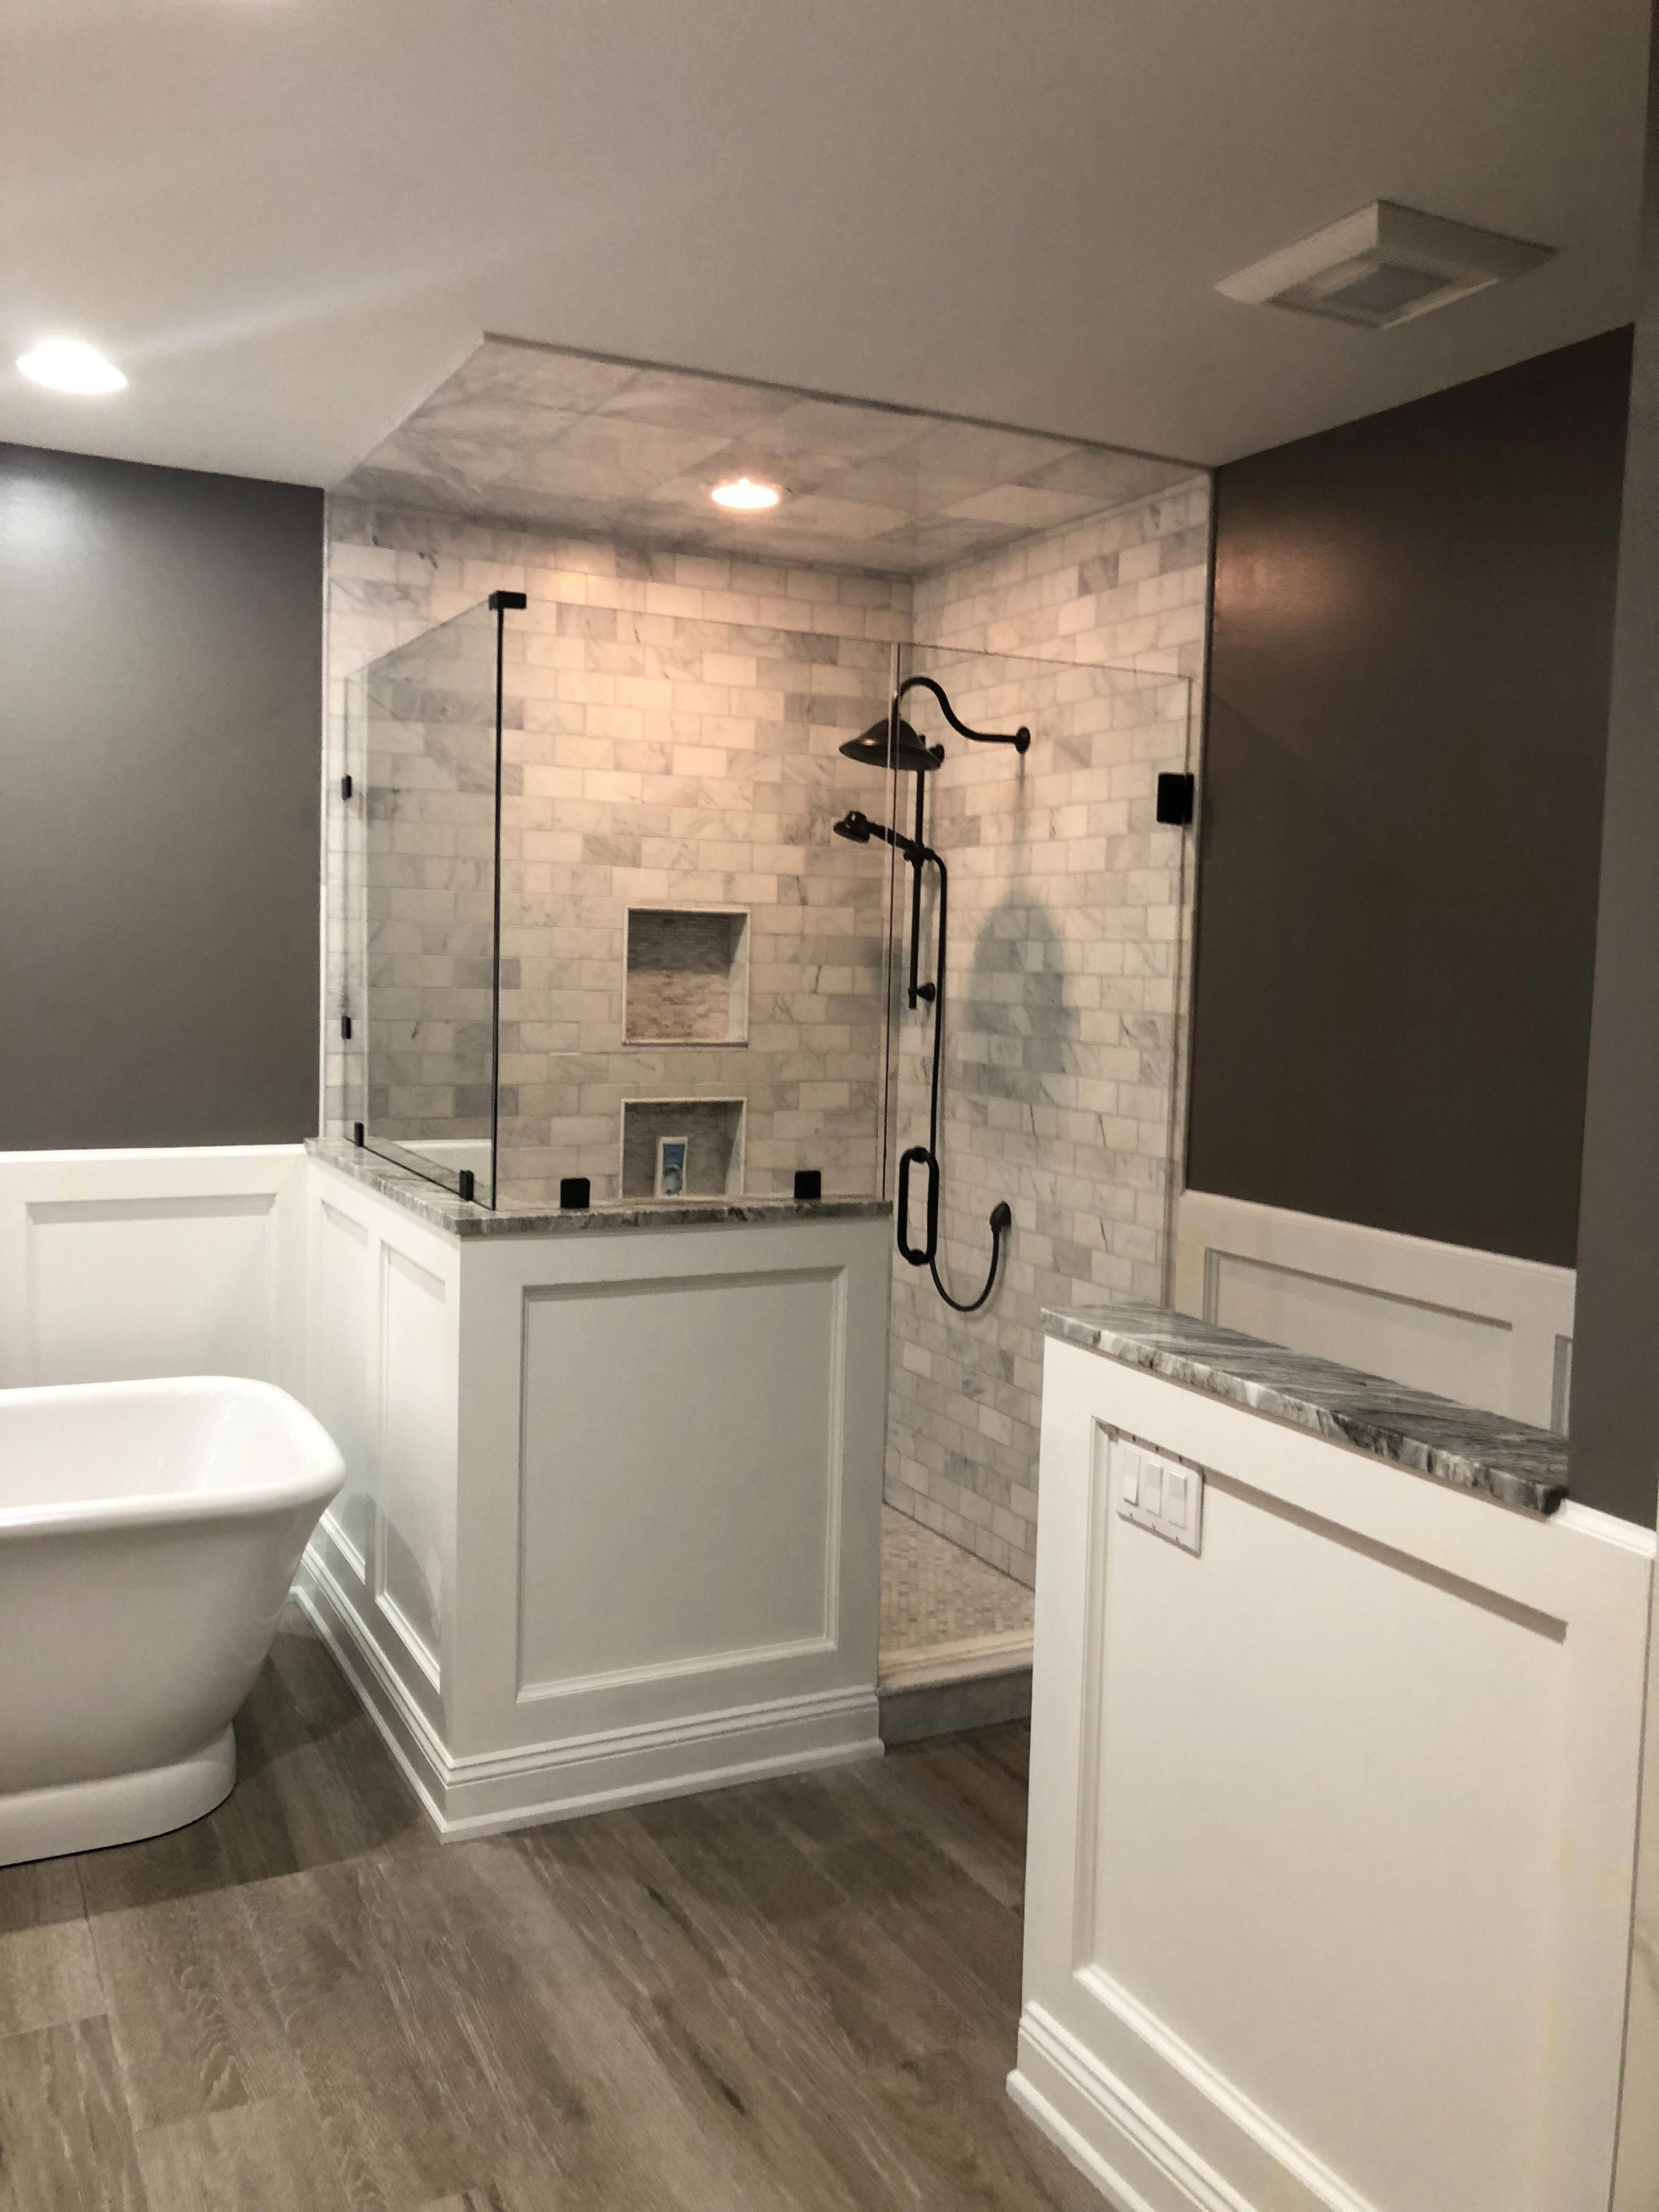 These Amazing Shower Ideas Will Motivate You To Make Changes That Will Add Value And Also Transform Y In 2020 Bathroom Layout Bathrooms Remodel Bathroom Remodel Master